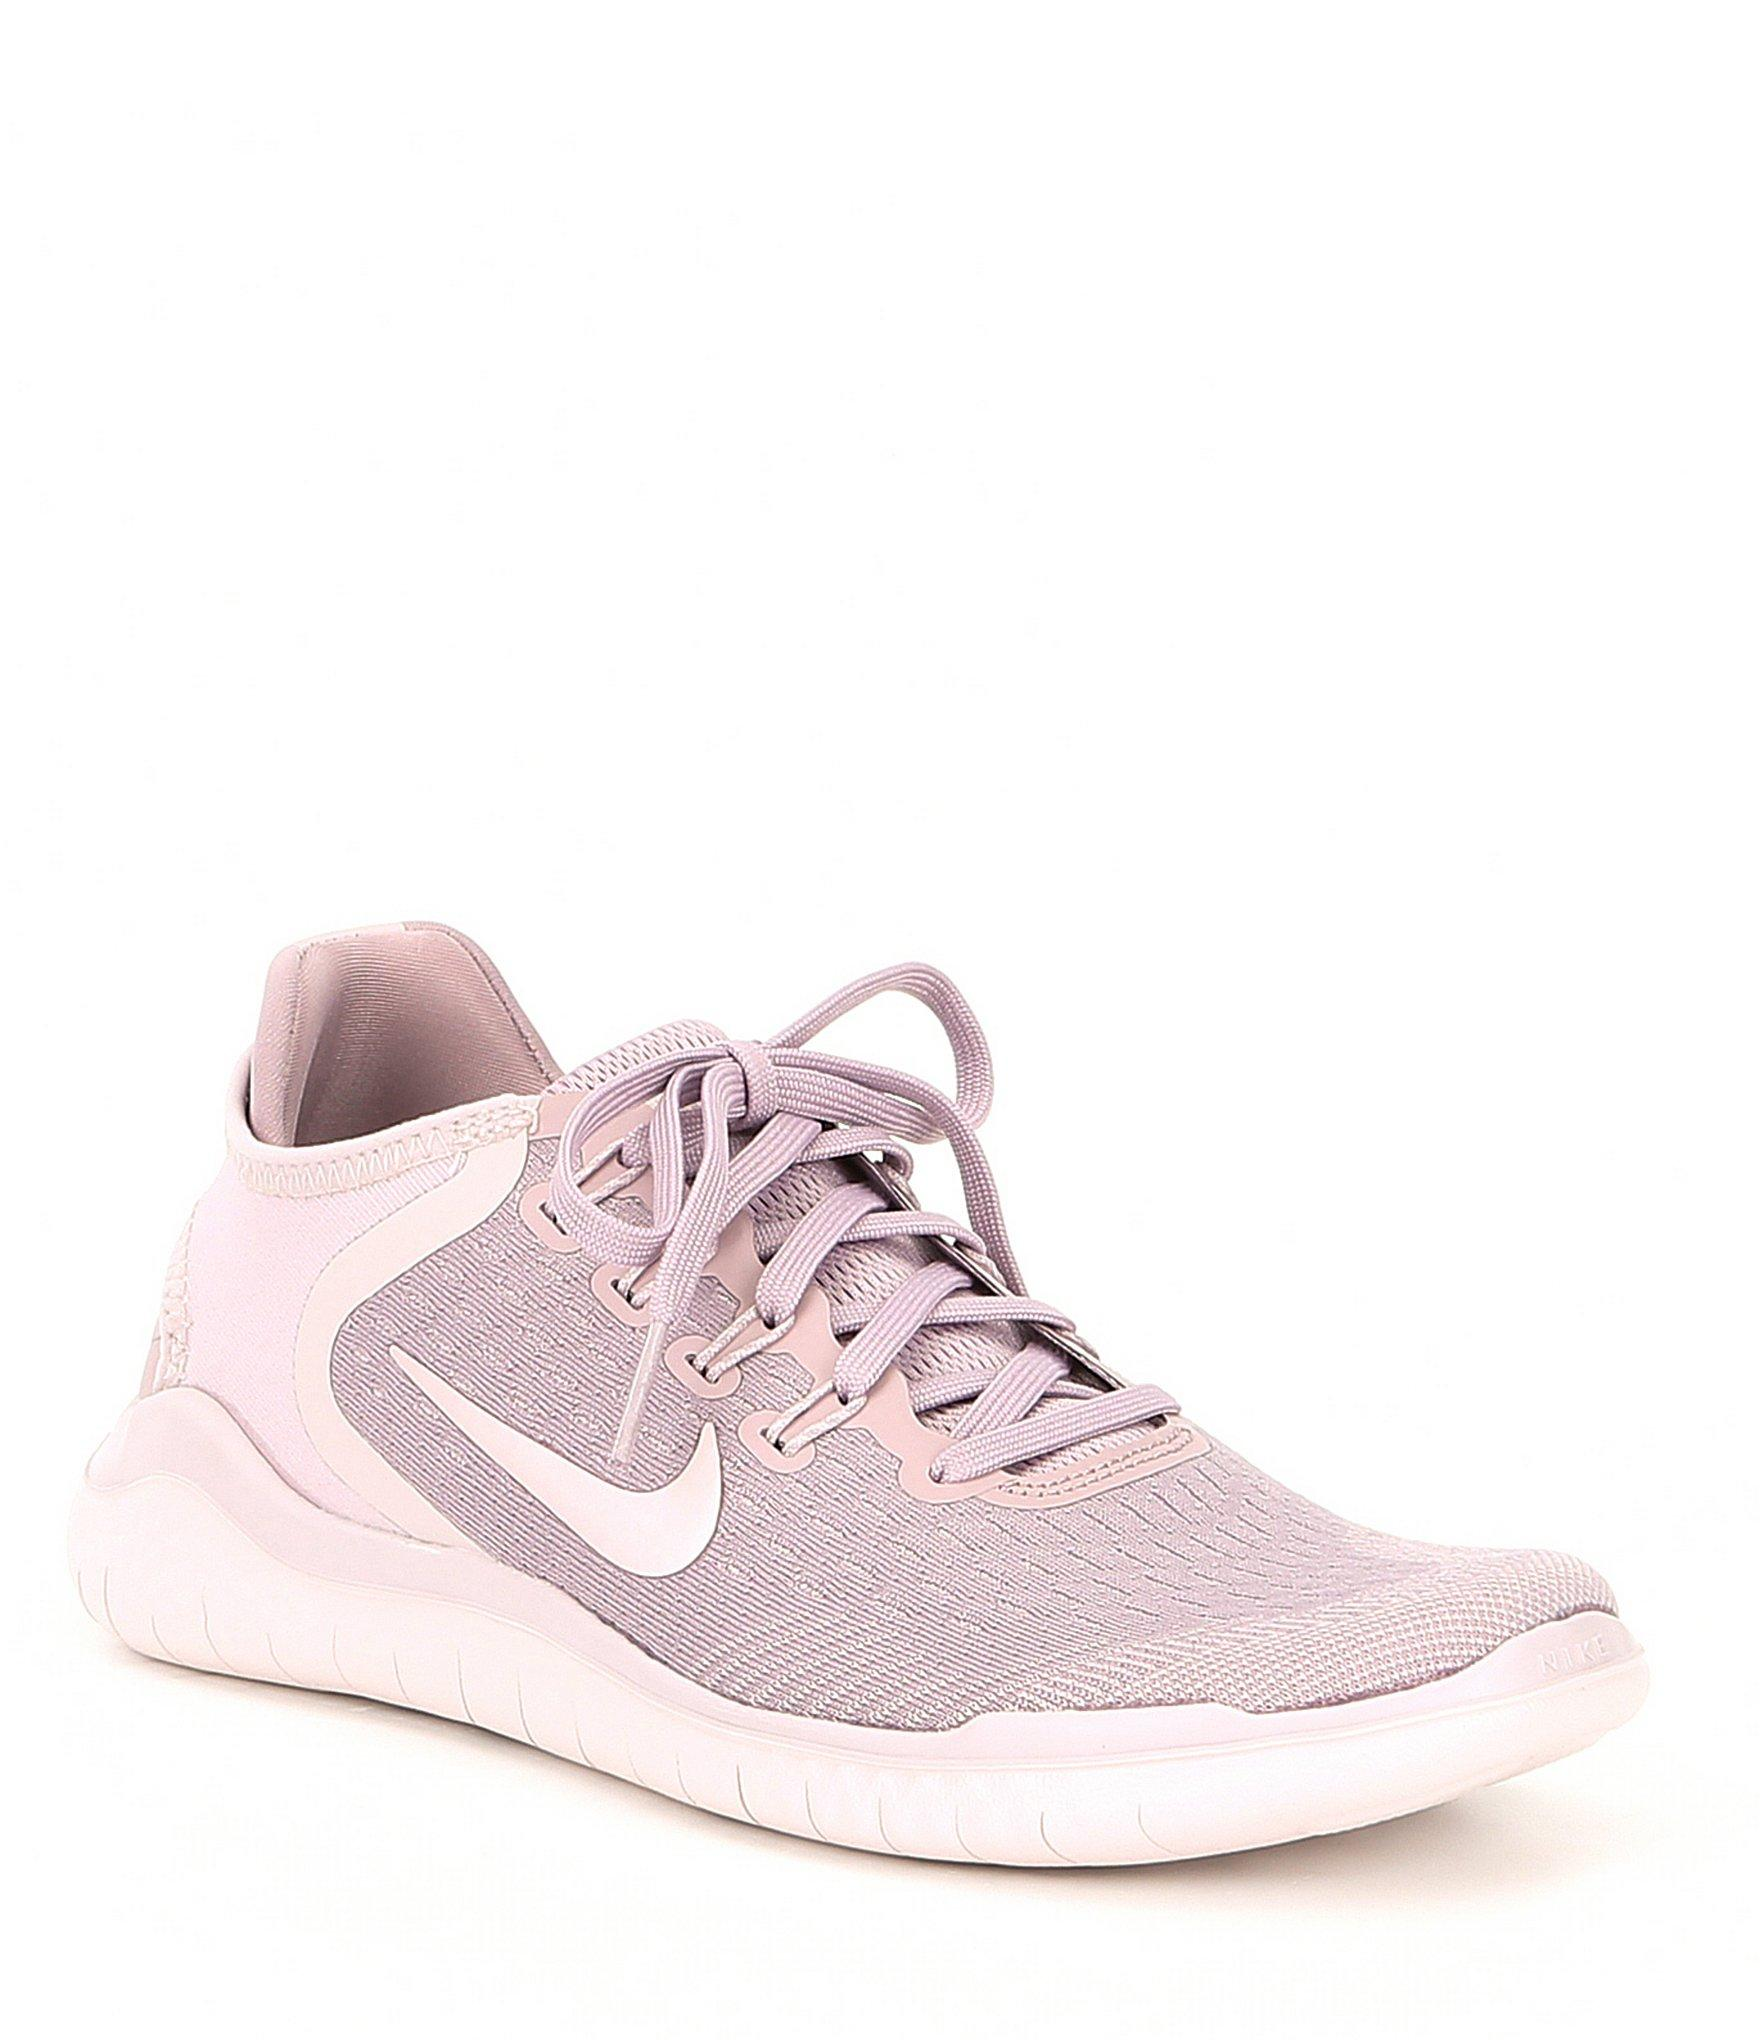 4a3c63872fc65 Lyst - Nike Women s Free Rn 2018 Running Shoes in Pink